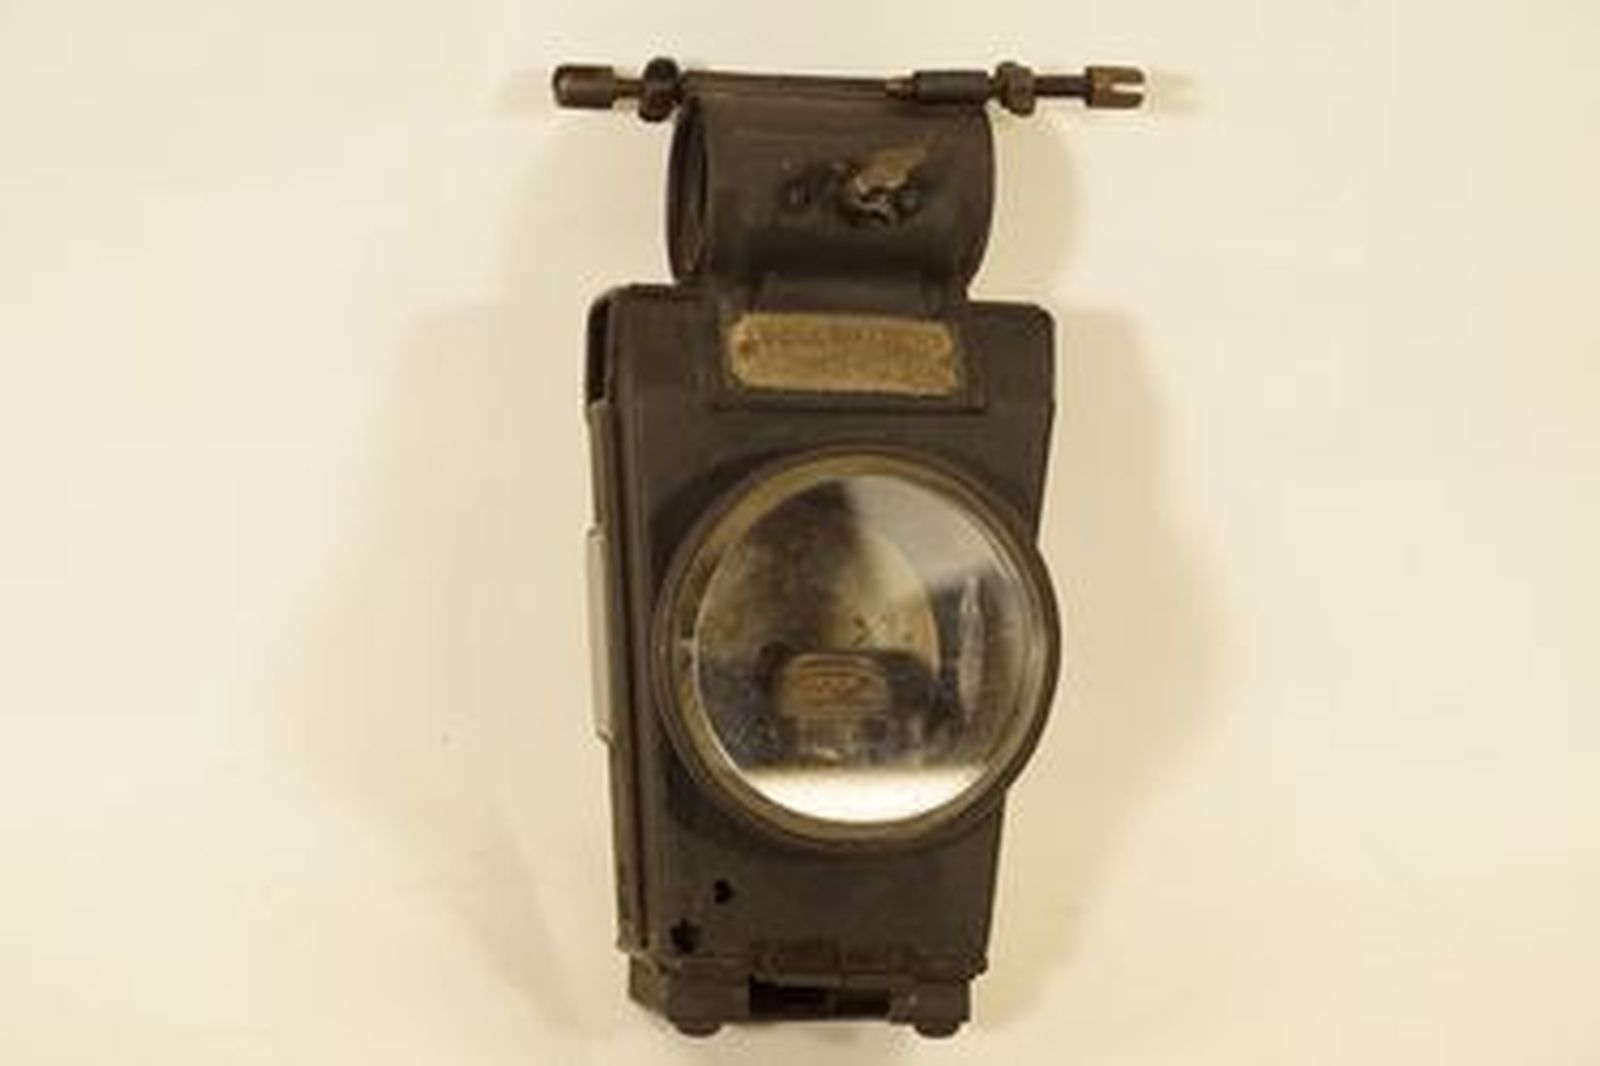 File:Guildhall Museum Collection Penny-farthing Paraffin Hub light 3301.JPG